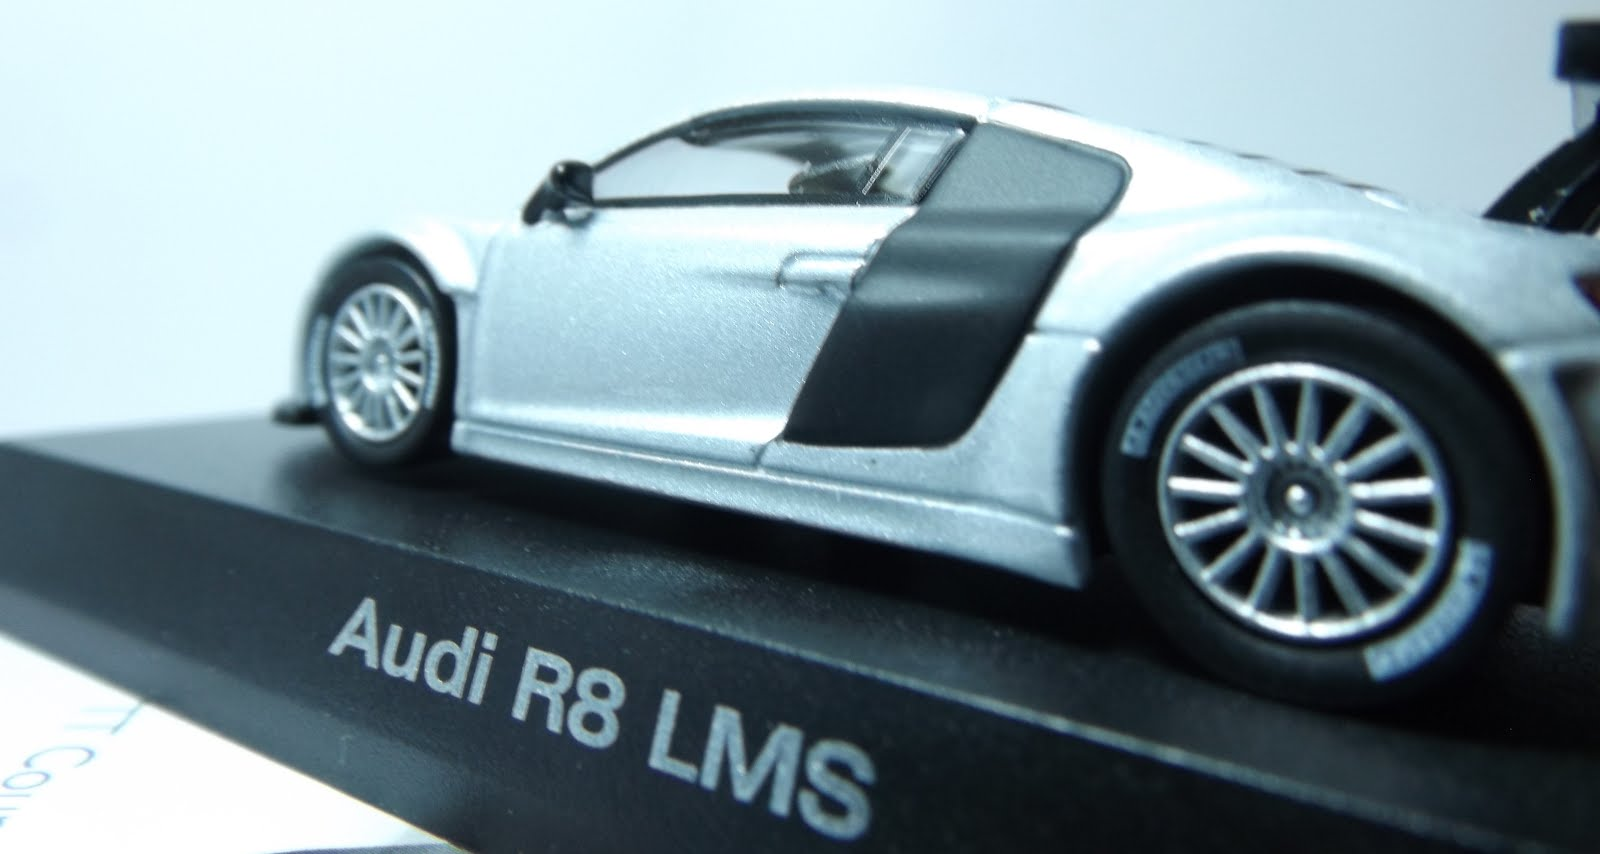 Diecast kyosho audi r8 lms rear side